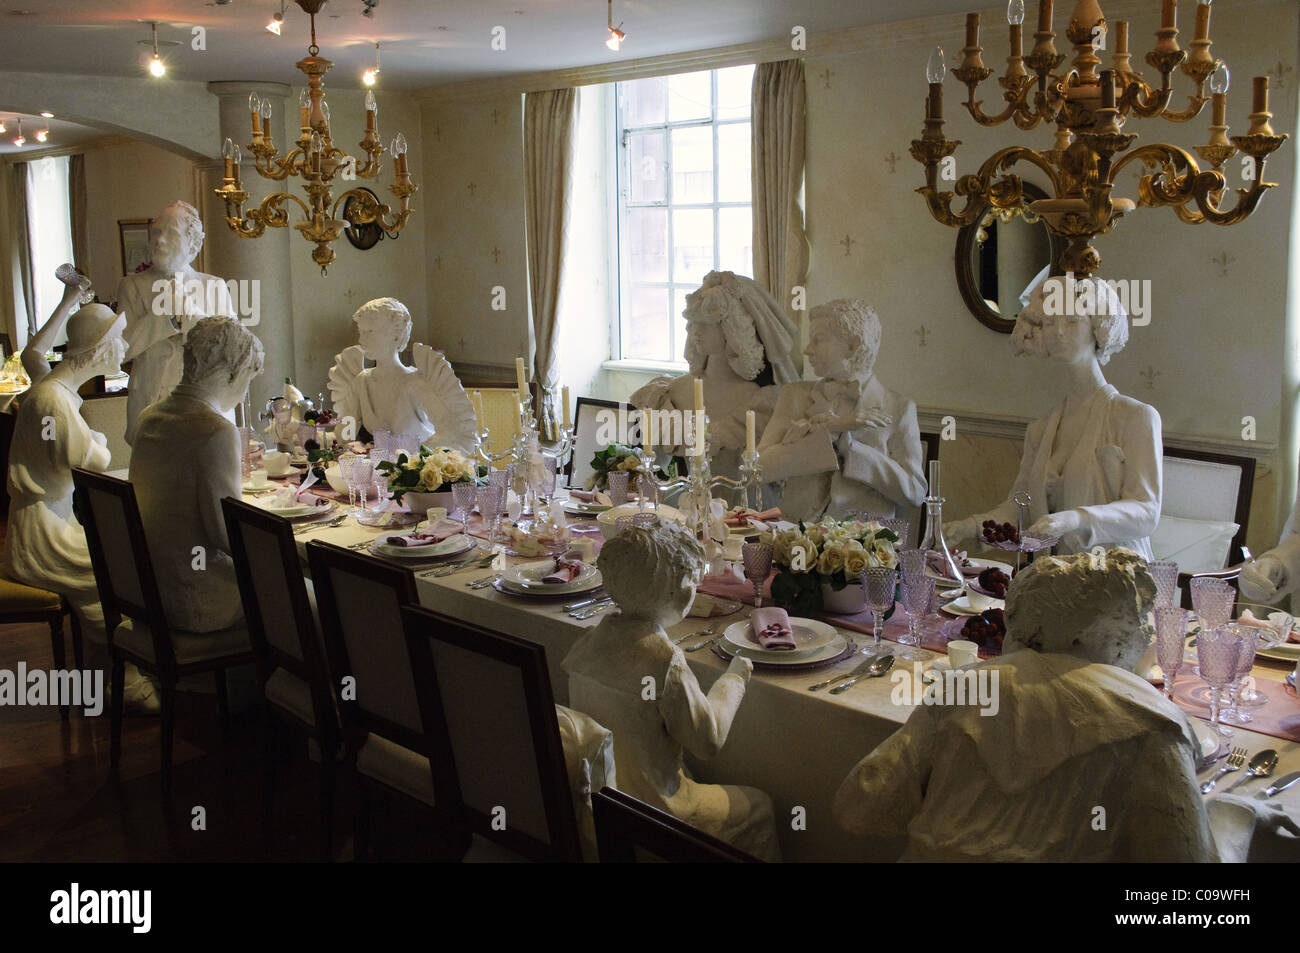 mettlach saarland germany stockfotos mettlach saarland germany bilder alamy. Black Bedroom Furniture Sets. Home Design Ideas